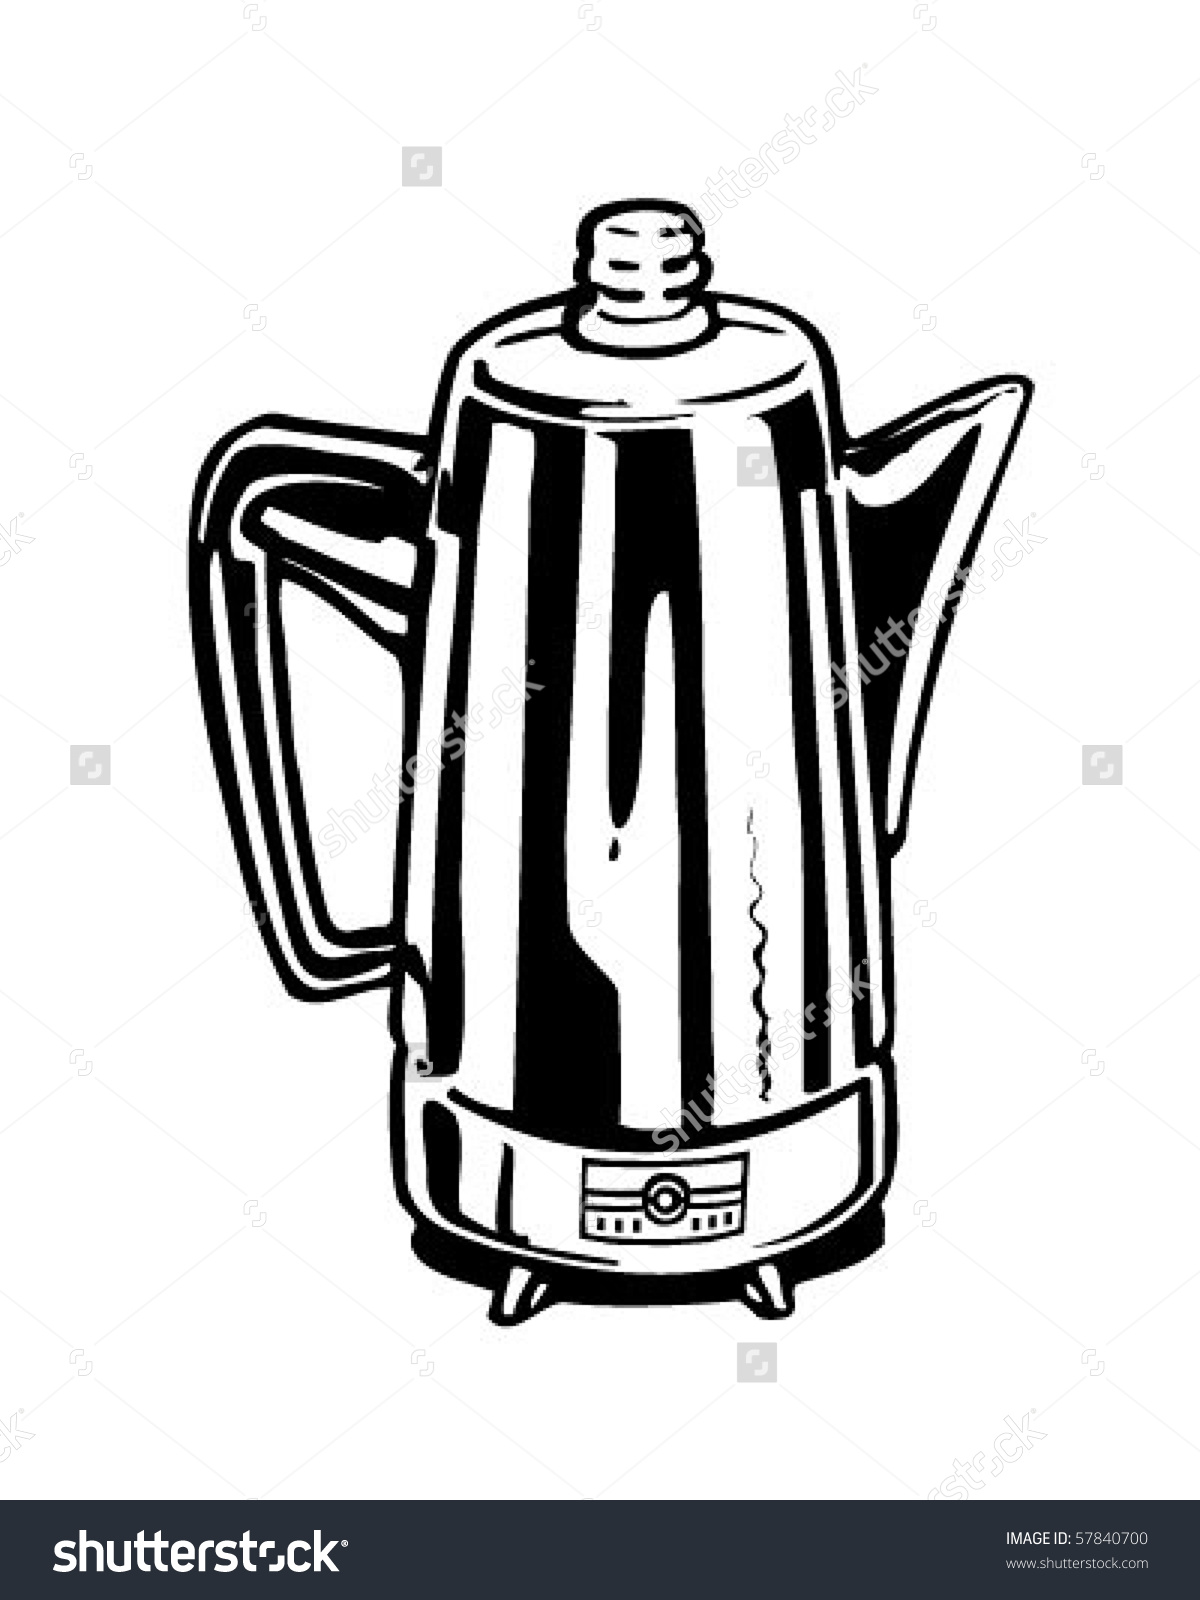 Coffee Percolator.